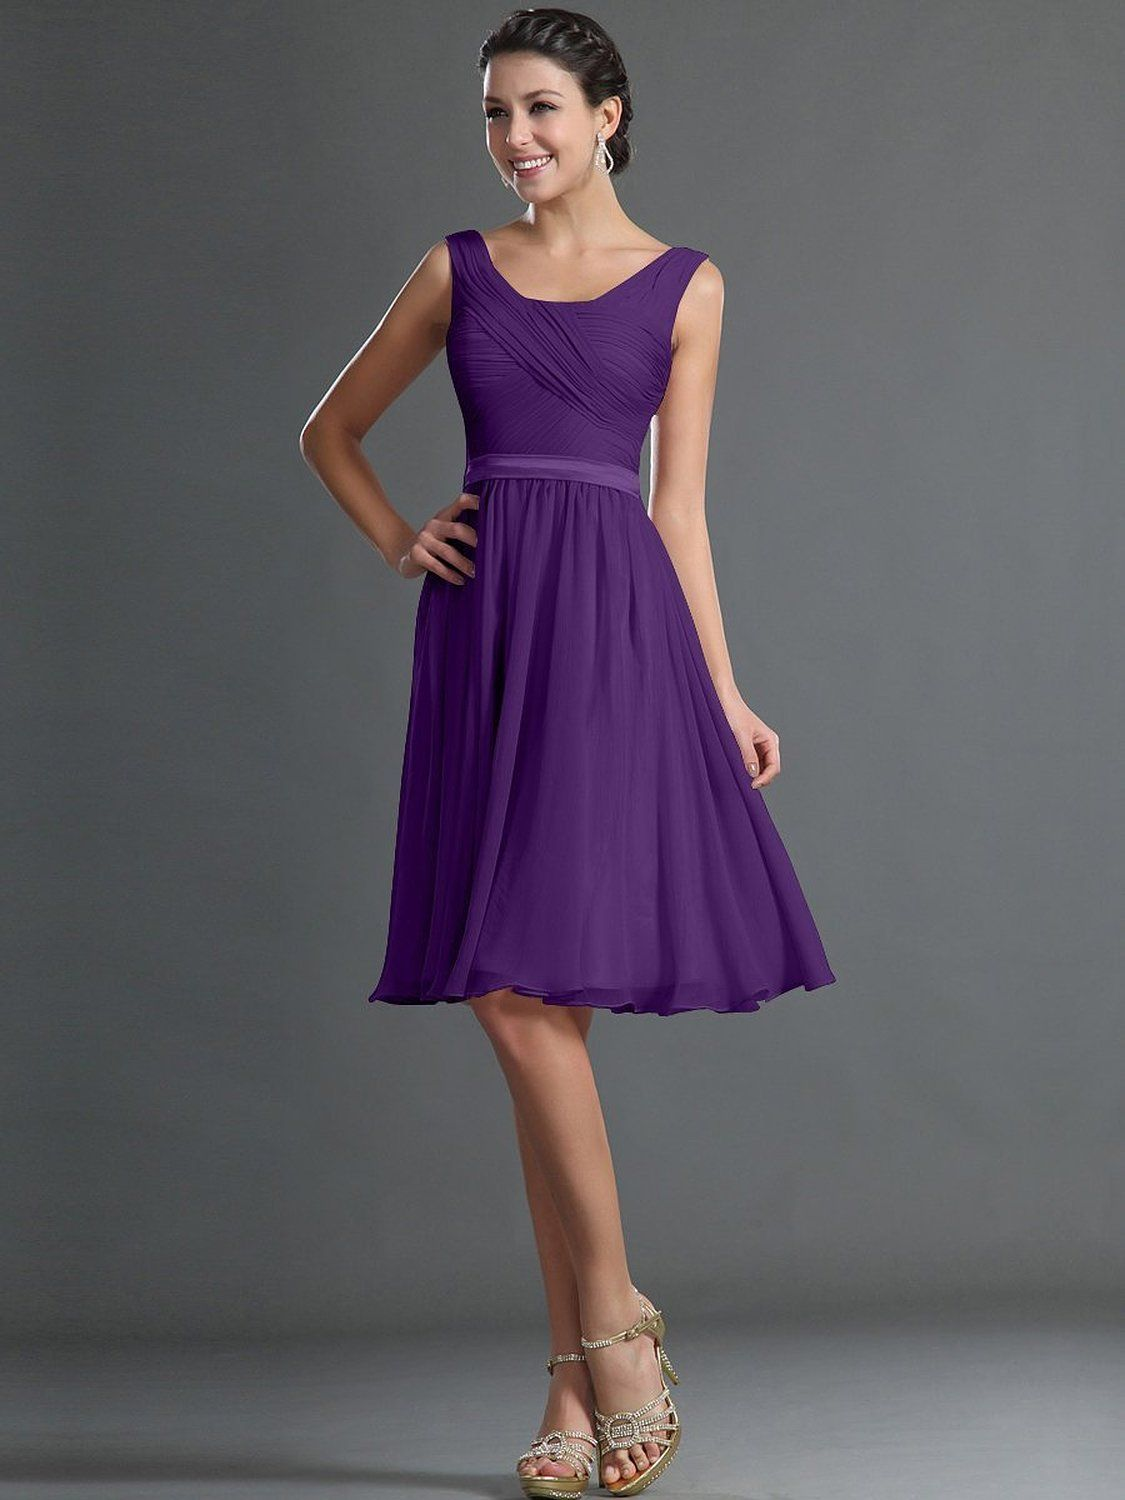 Remedios aline chiffon bridesmaid dresses short party gown for prom